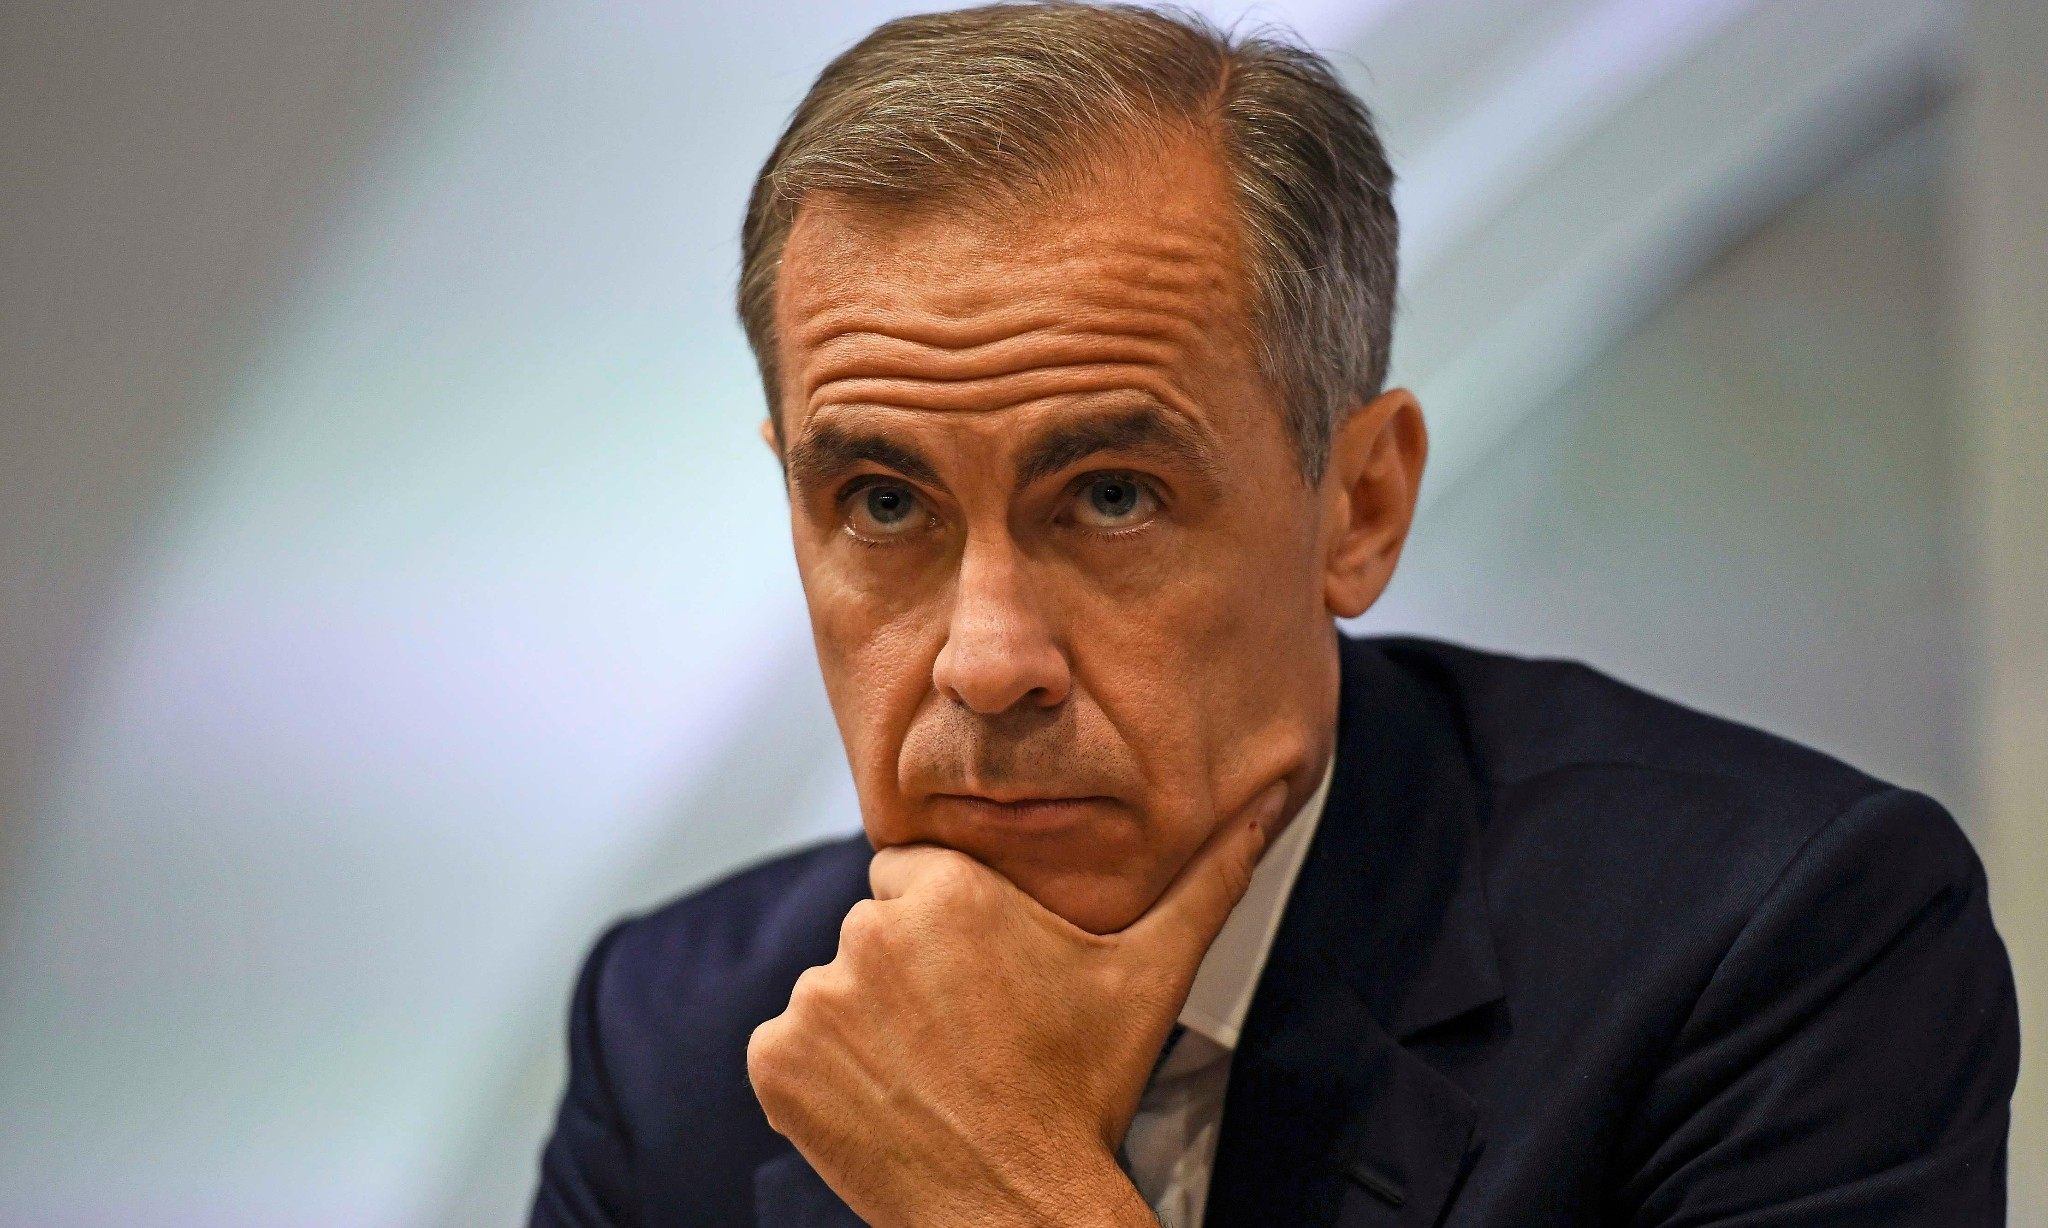 Bank of England considers interest rate cut to tackle Brexit crisis